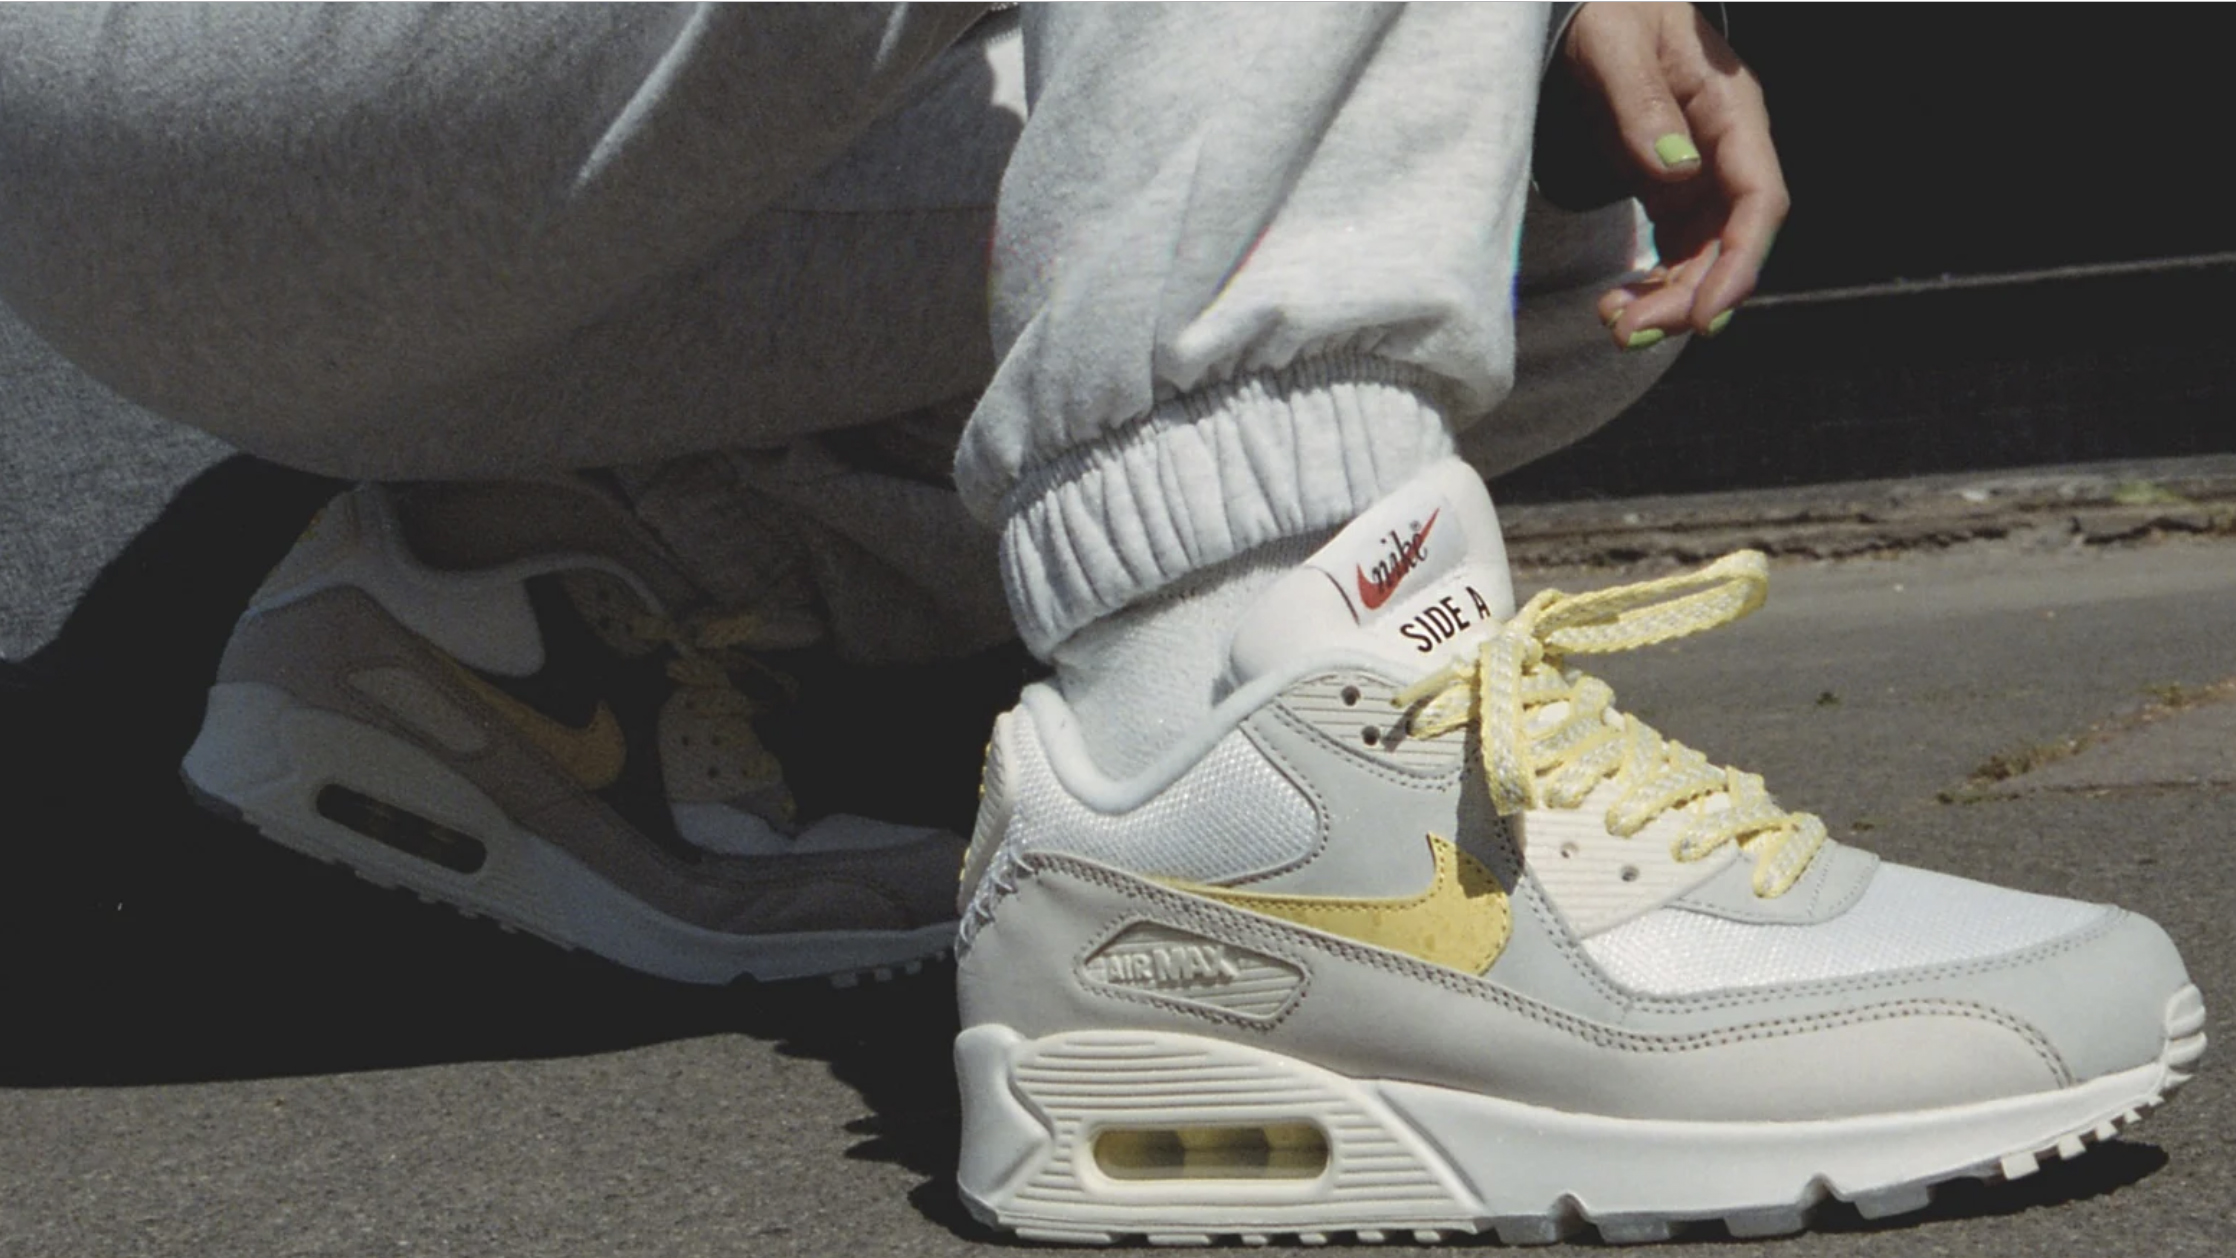 A Closer Look At The Upcoming Nike Air Max 90 Mix Tape 'Side